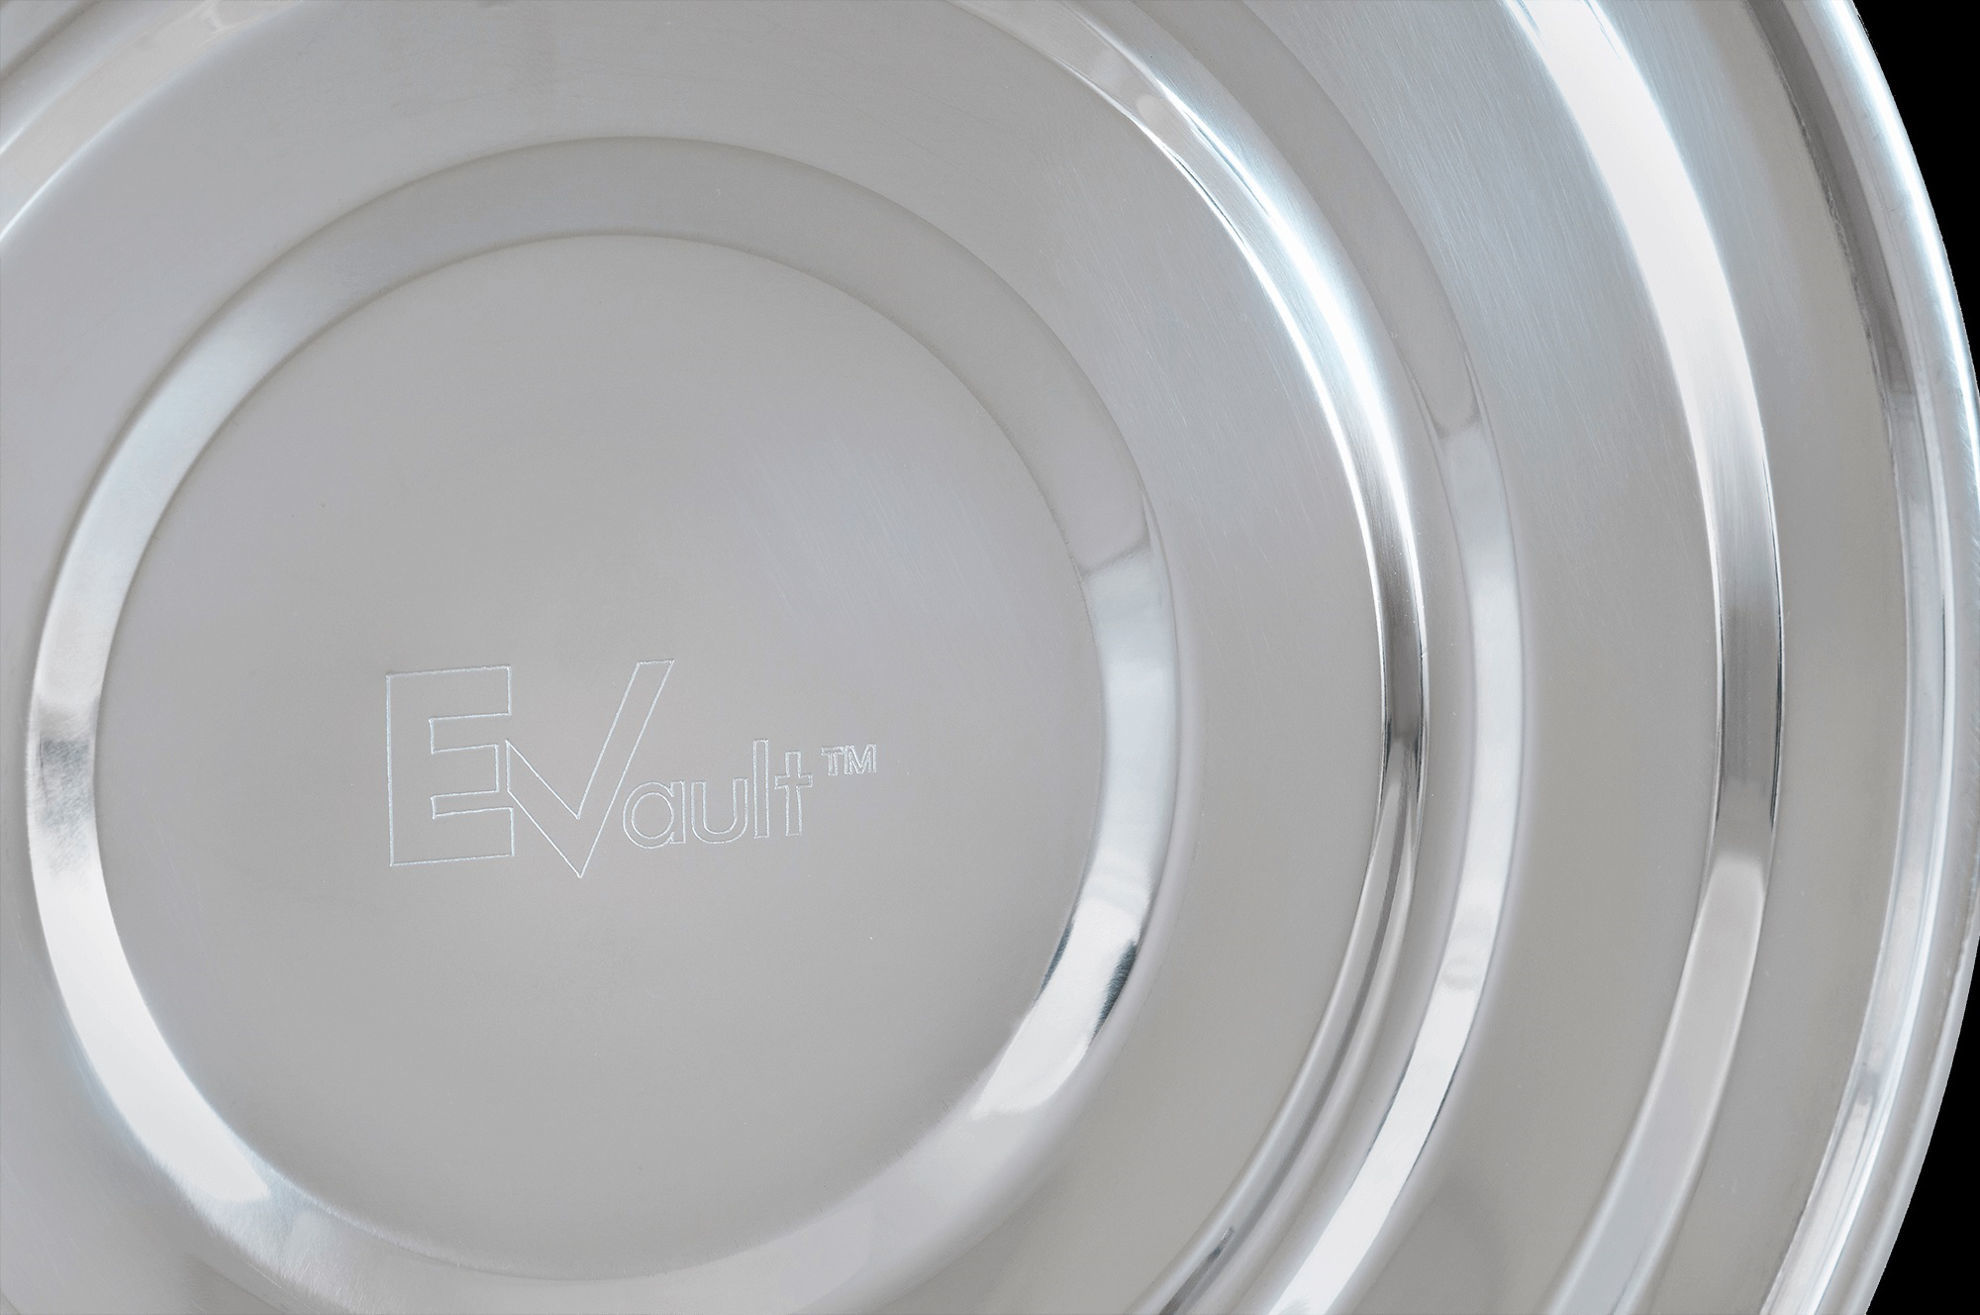 Picture of EVault™ 316 Stainless Steel Storage Containers - CSS-4L